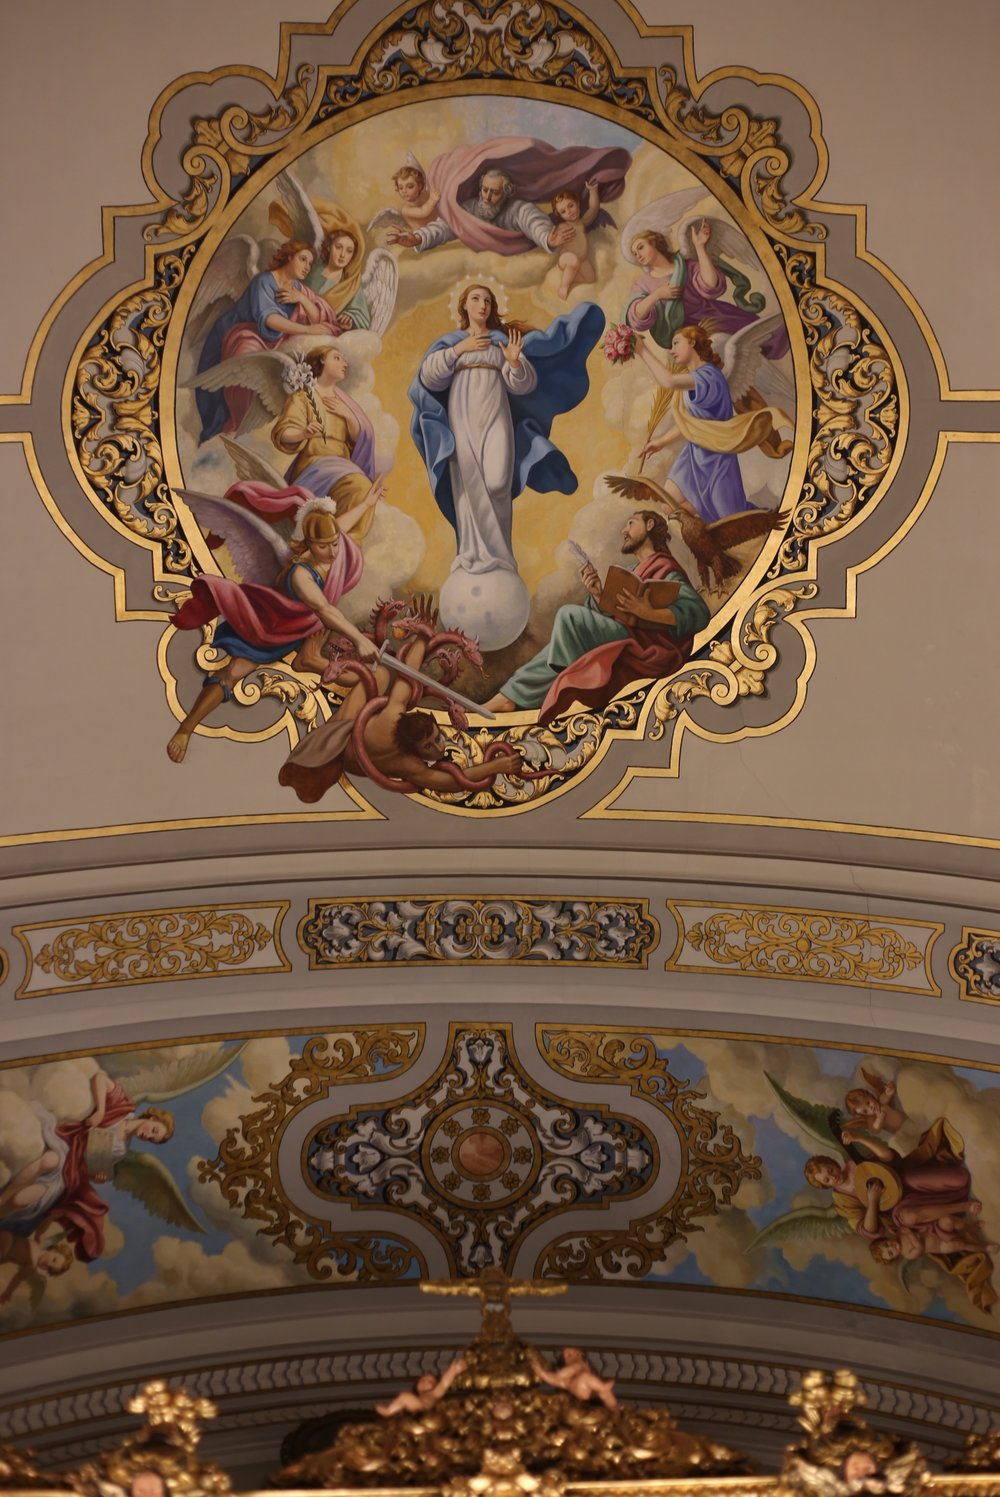 painted church ceiling angels and Mary